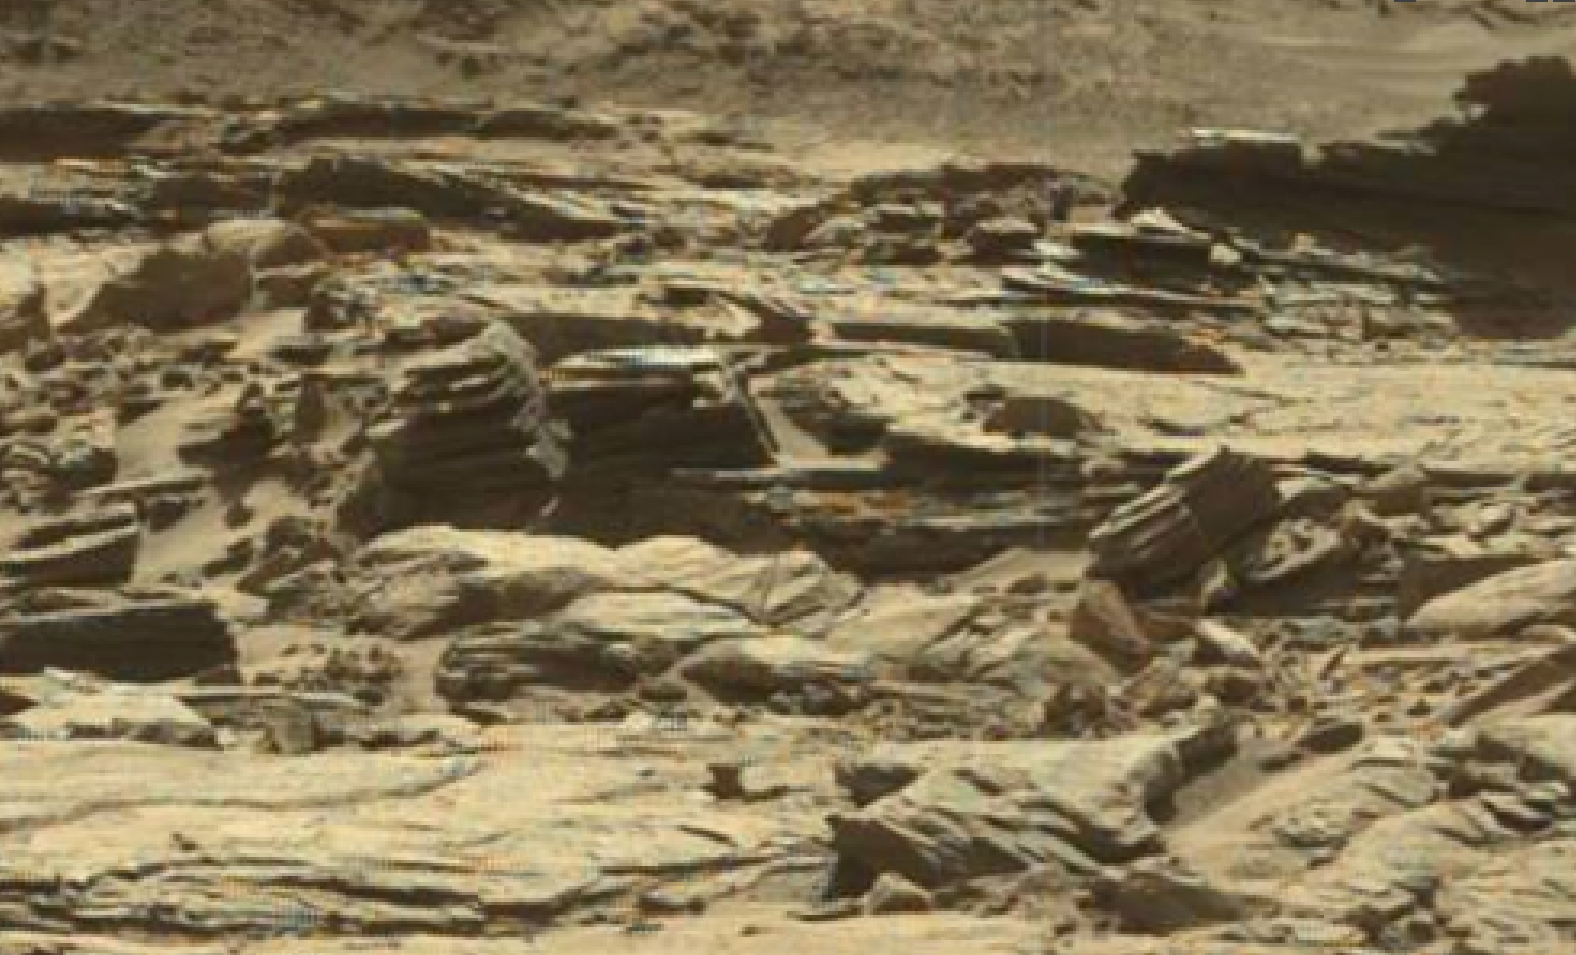 mars sol 1298 anomaly-artifacts 19 was life on mars